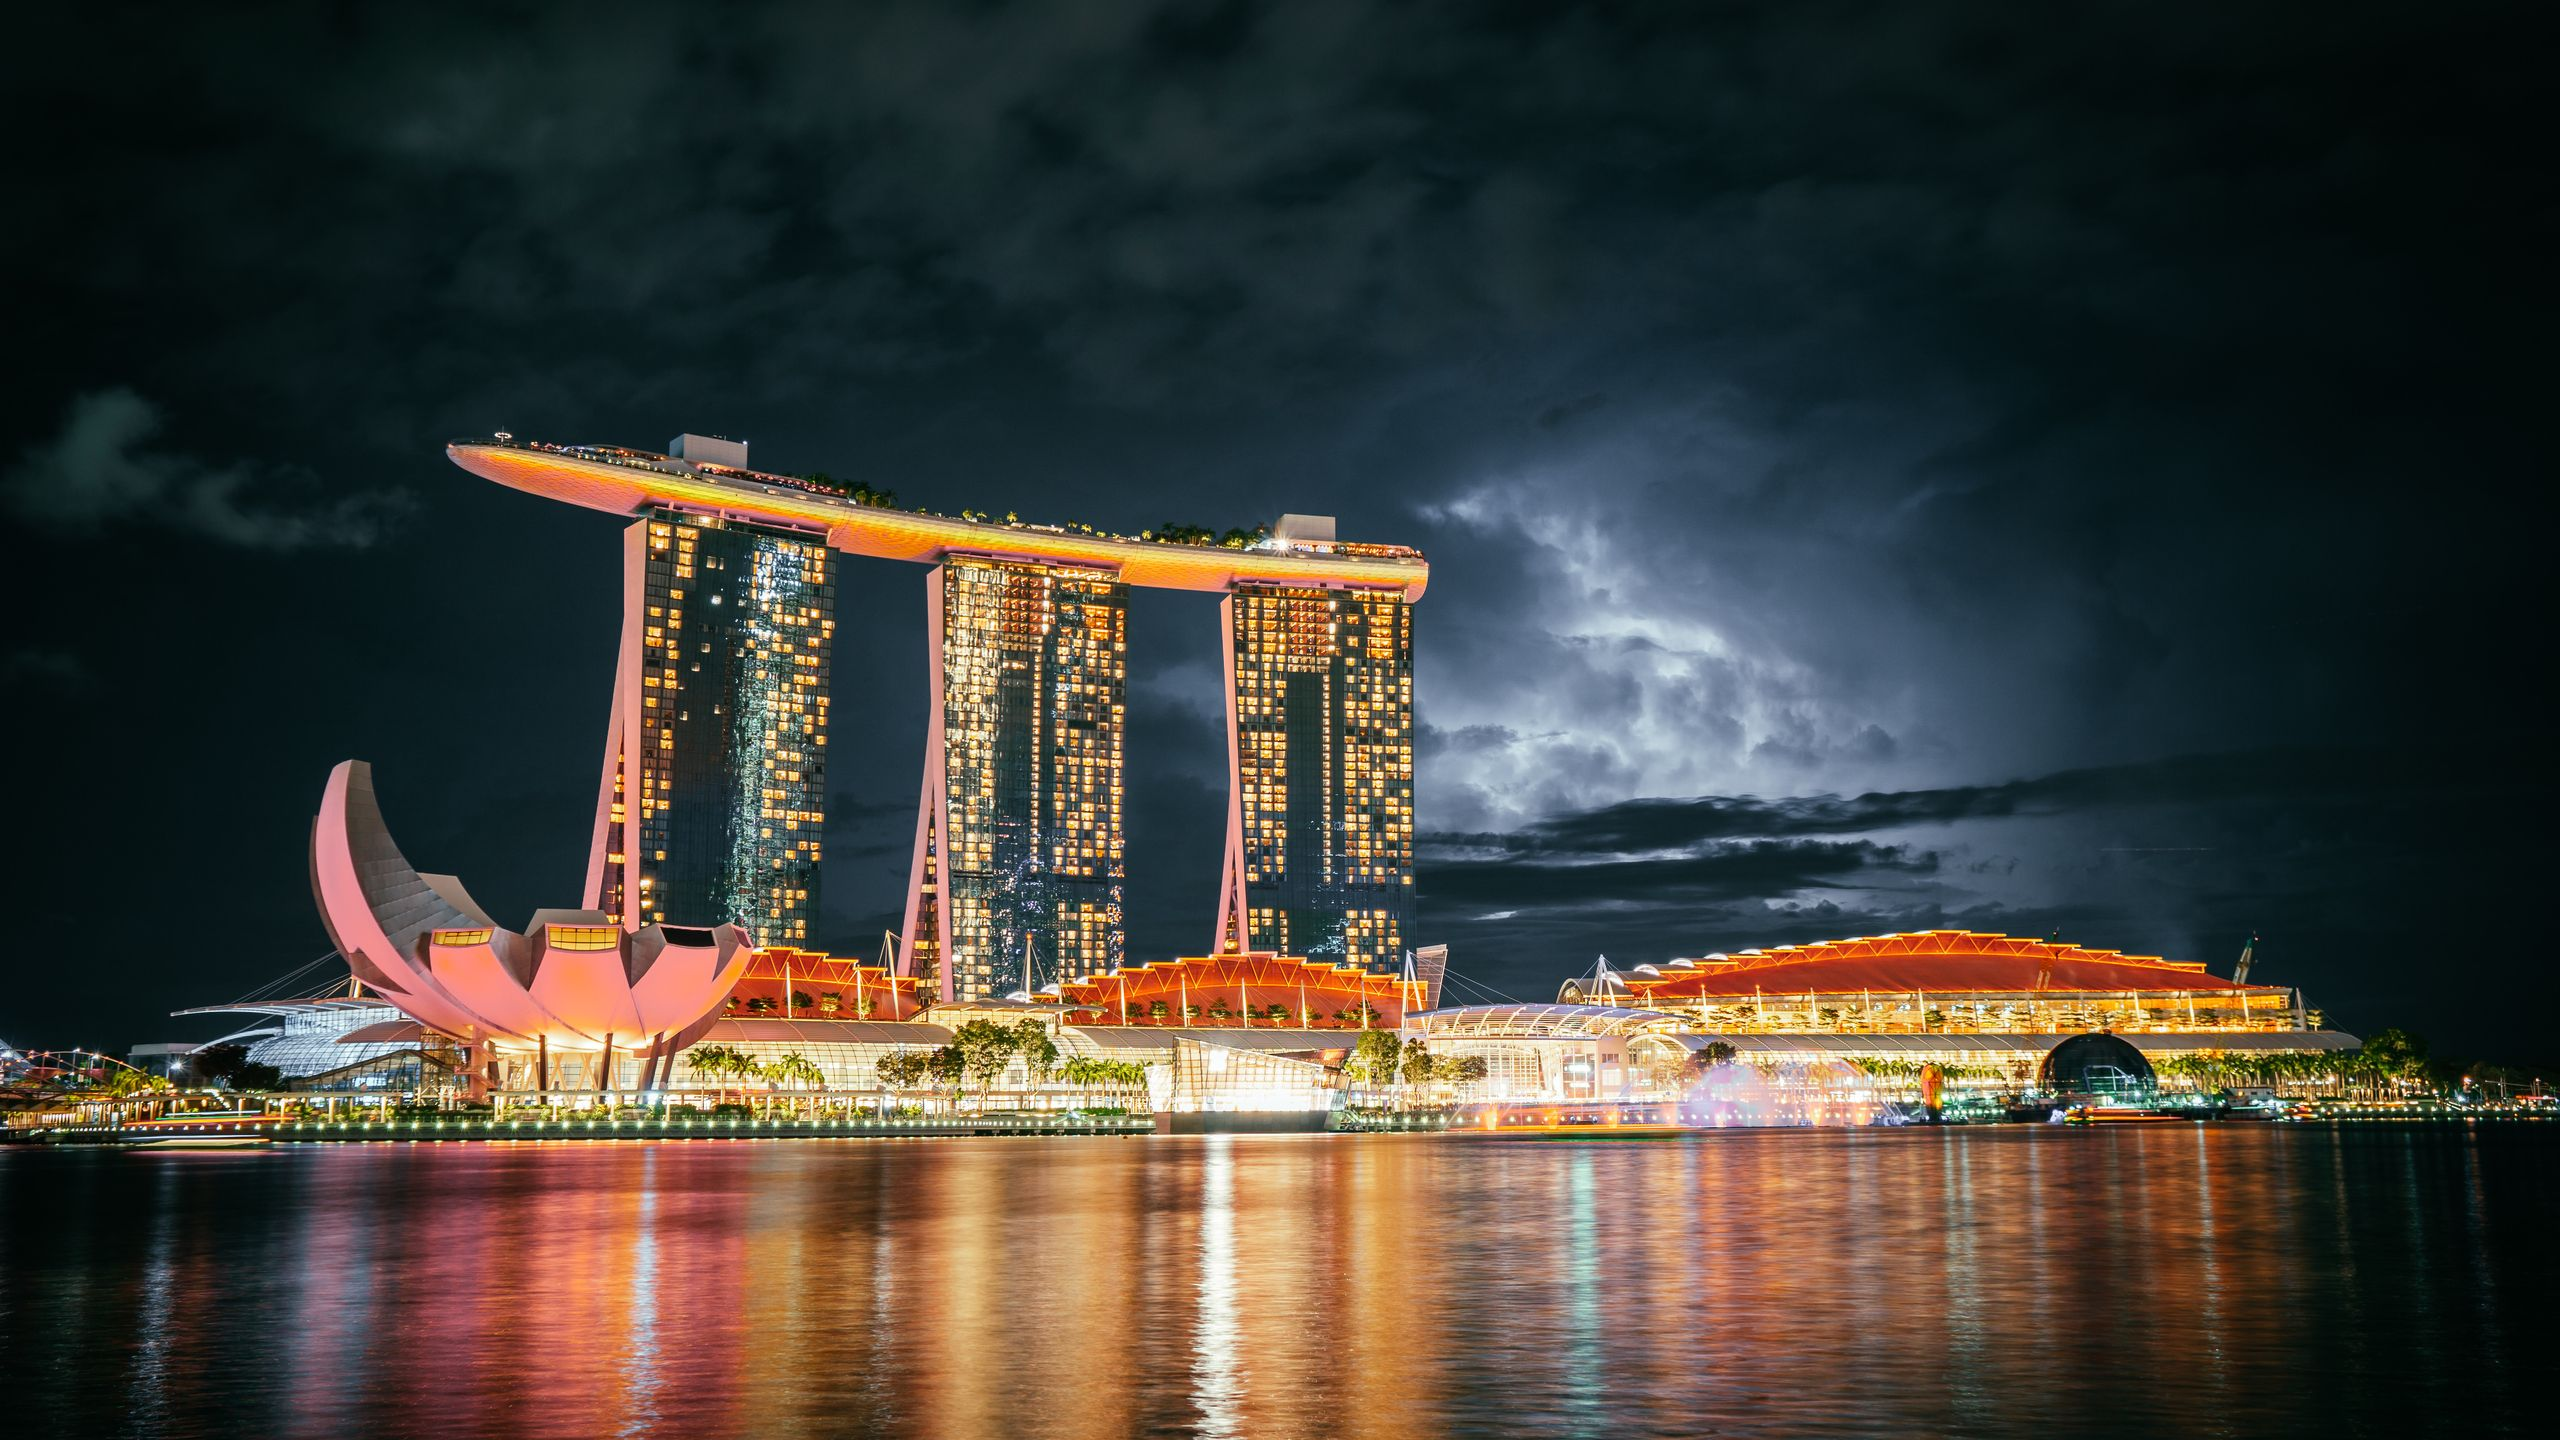 The Marina Bay Sands hotel by night